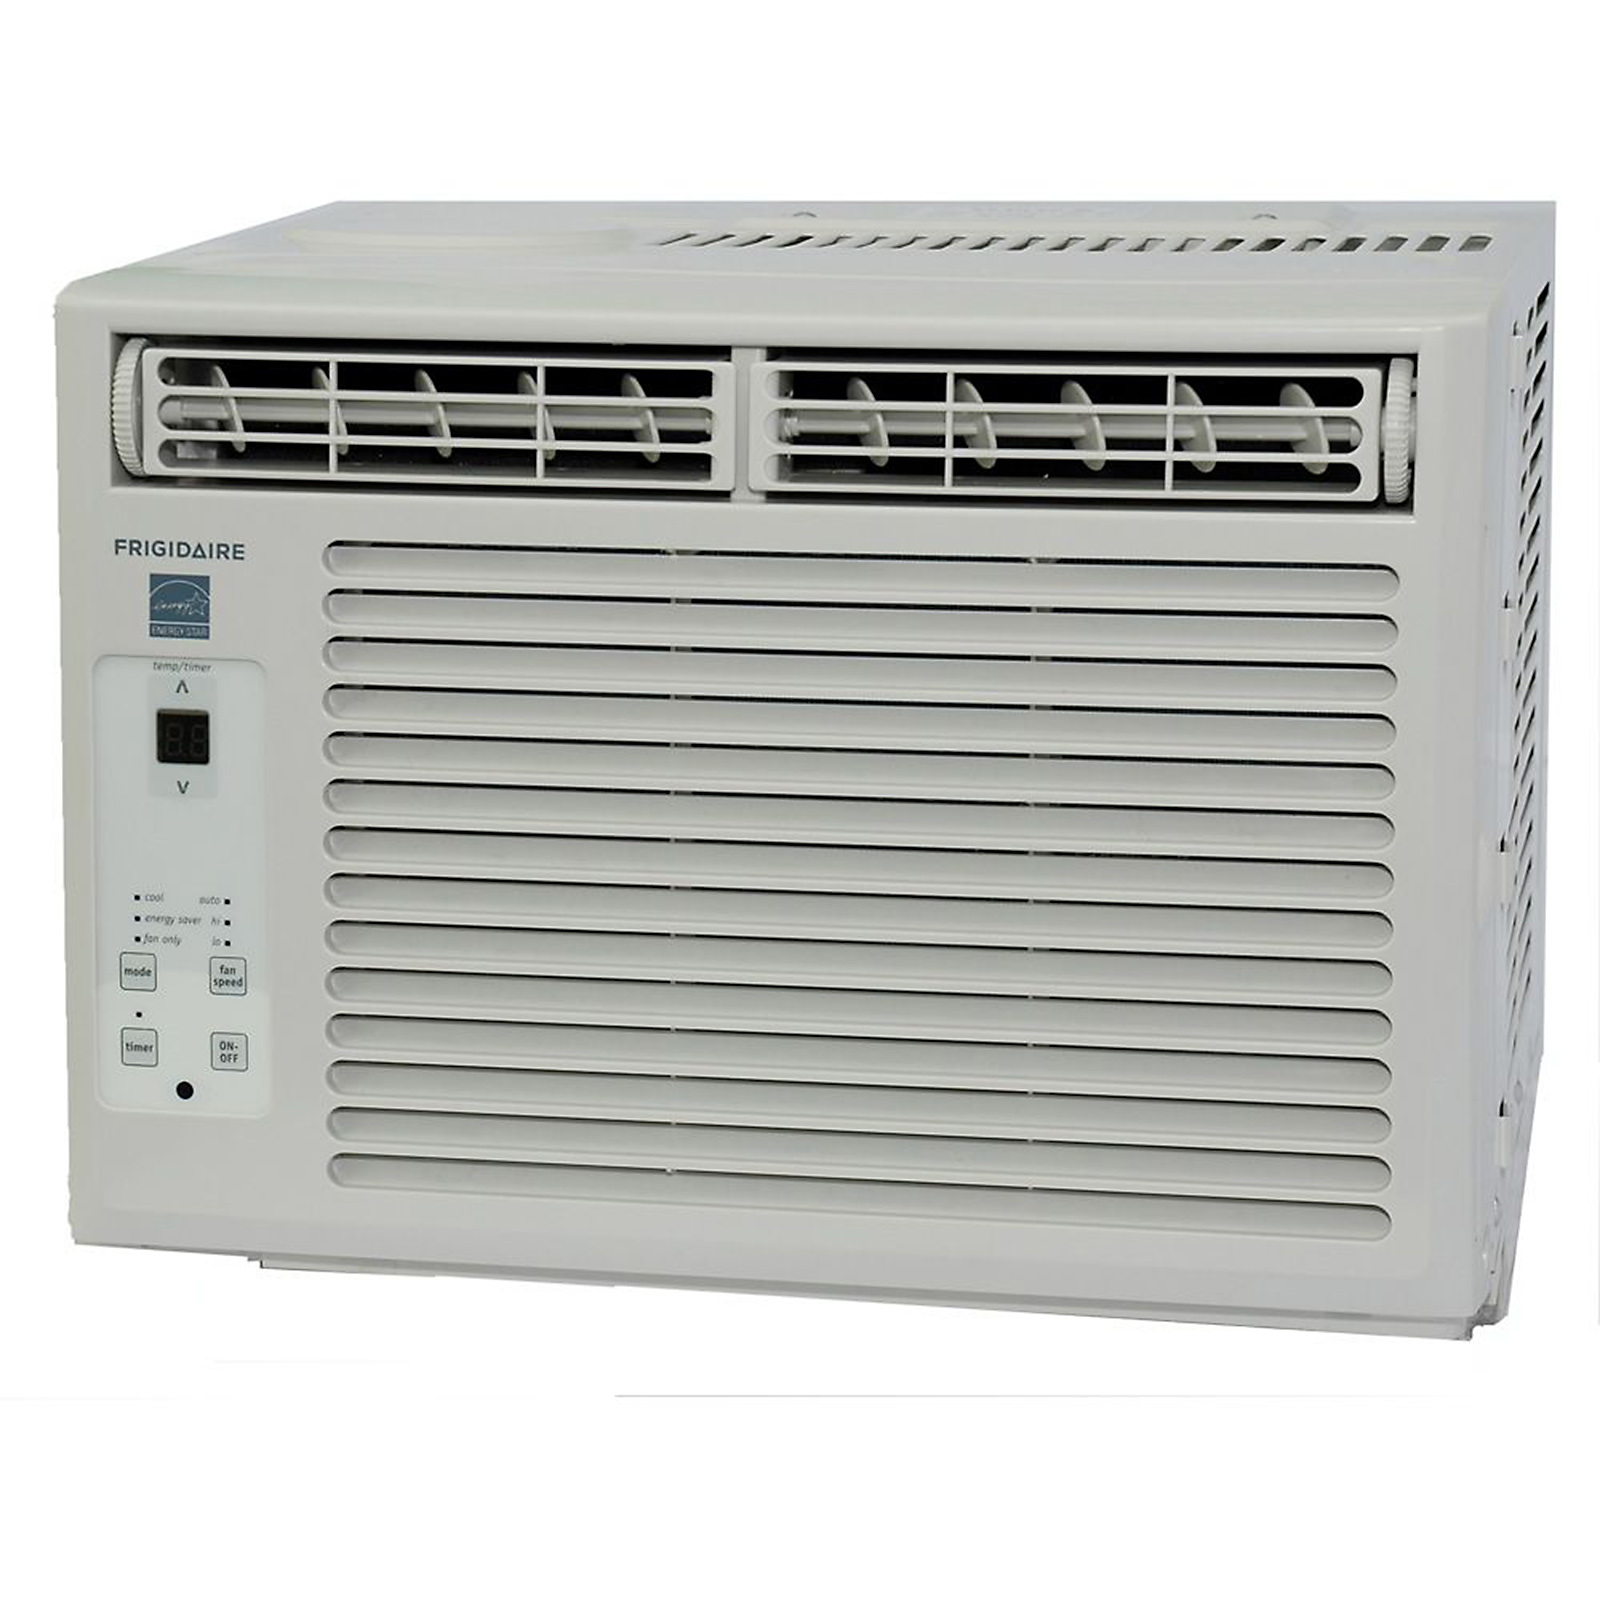 Frigidaire Fra054xt7 5 000 Btu 115-volt Window-mounted Mini-compact Air Conditioner With Full